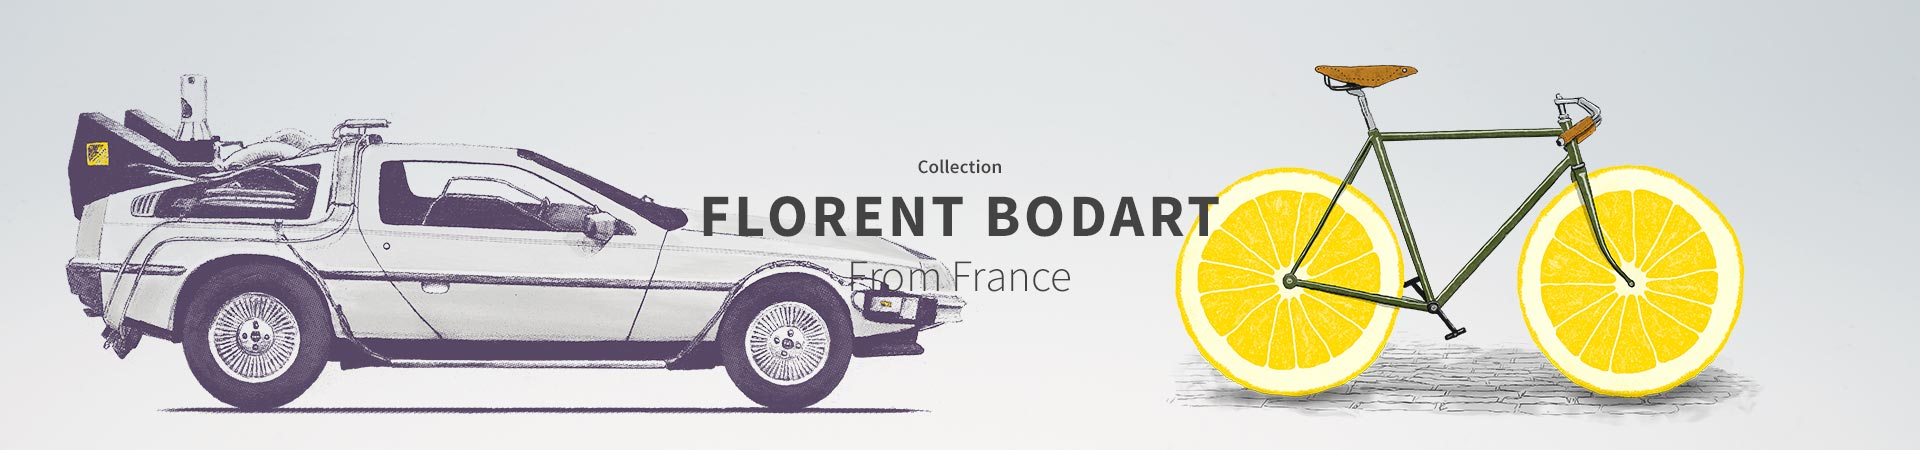 Collection Florent Bodart